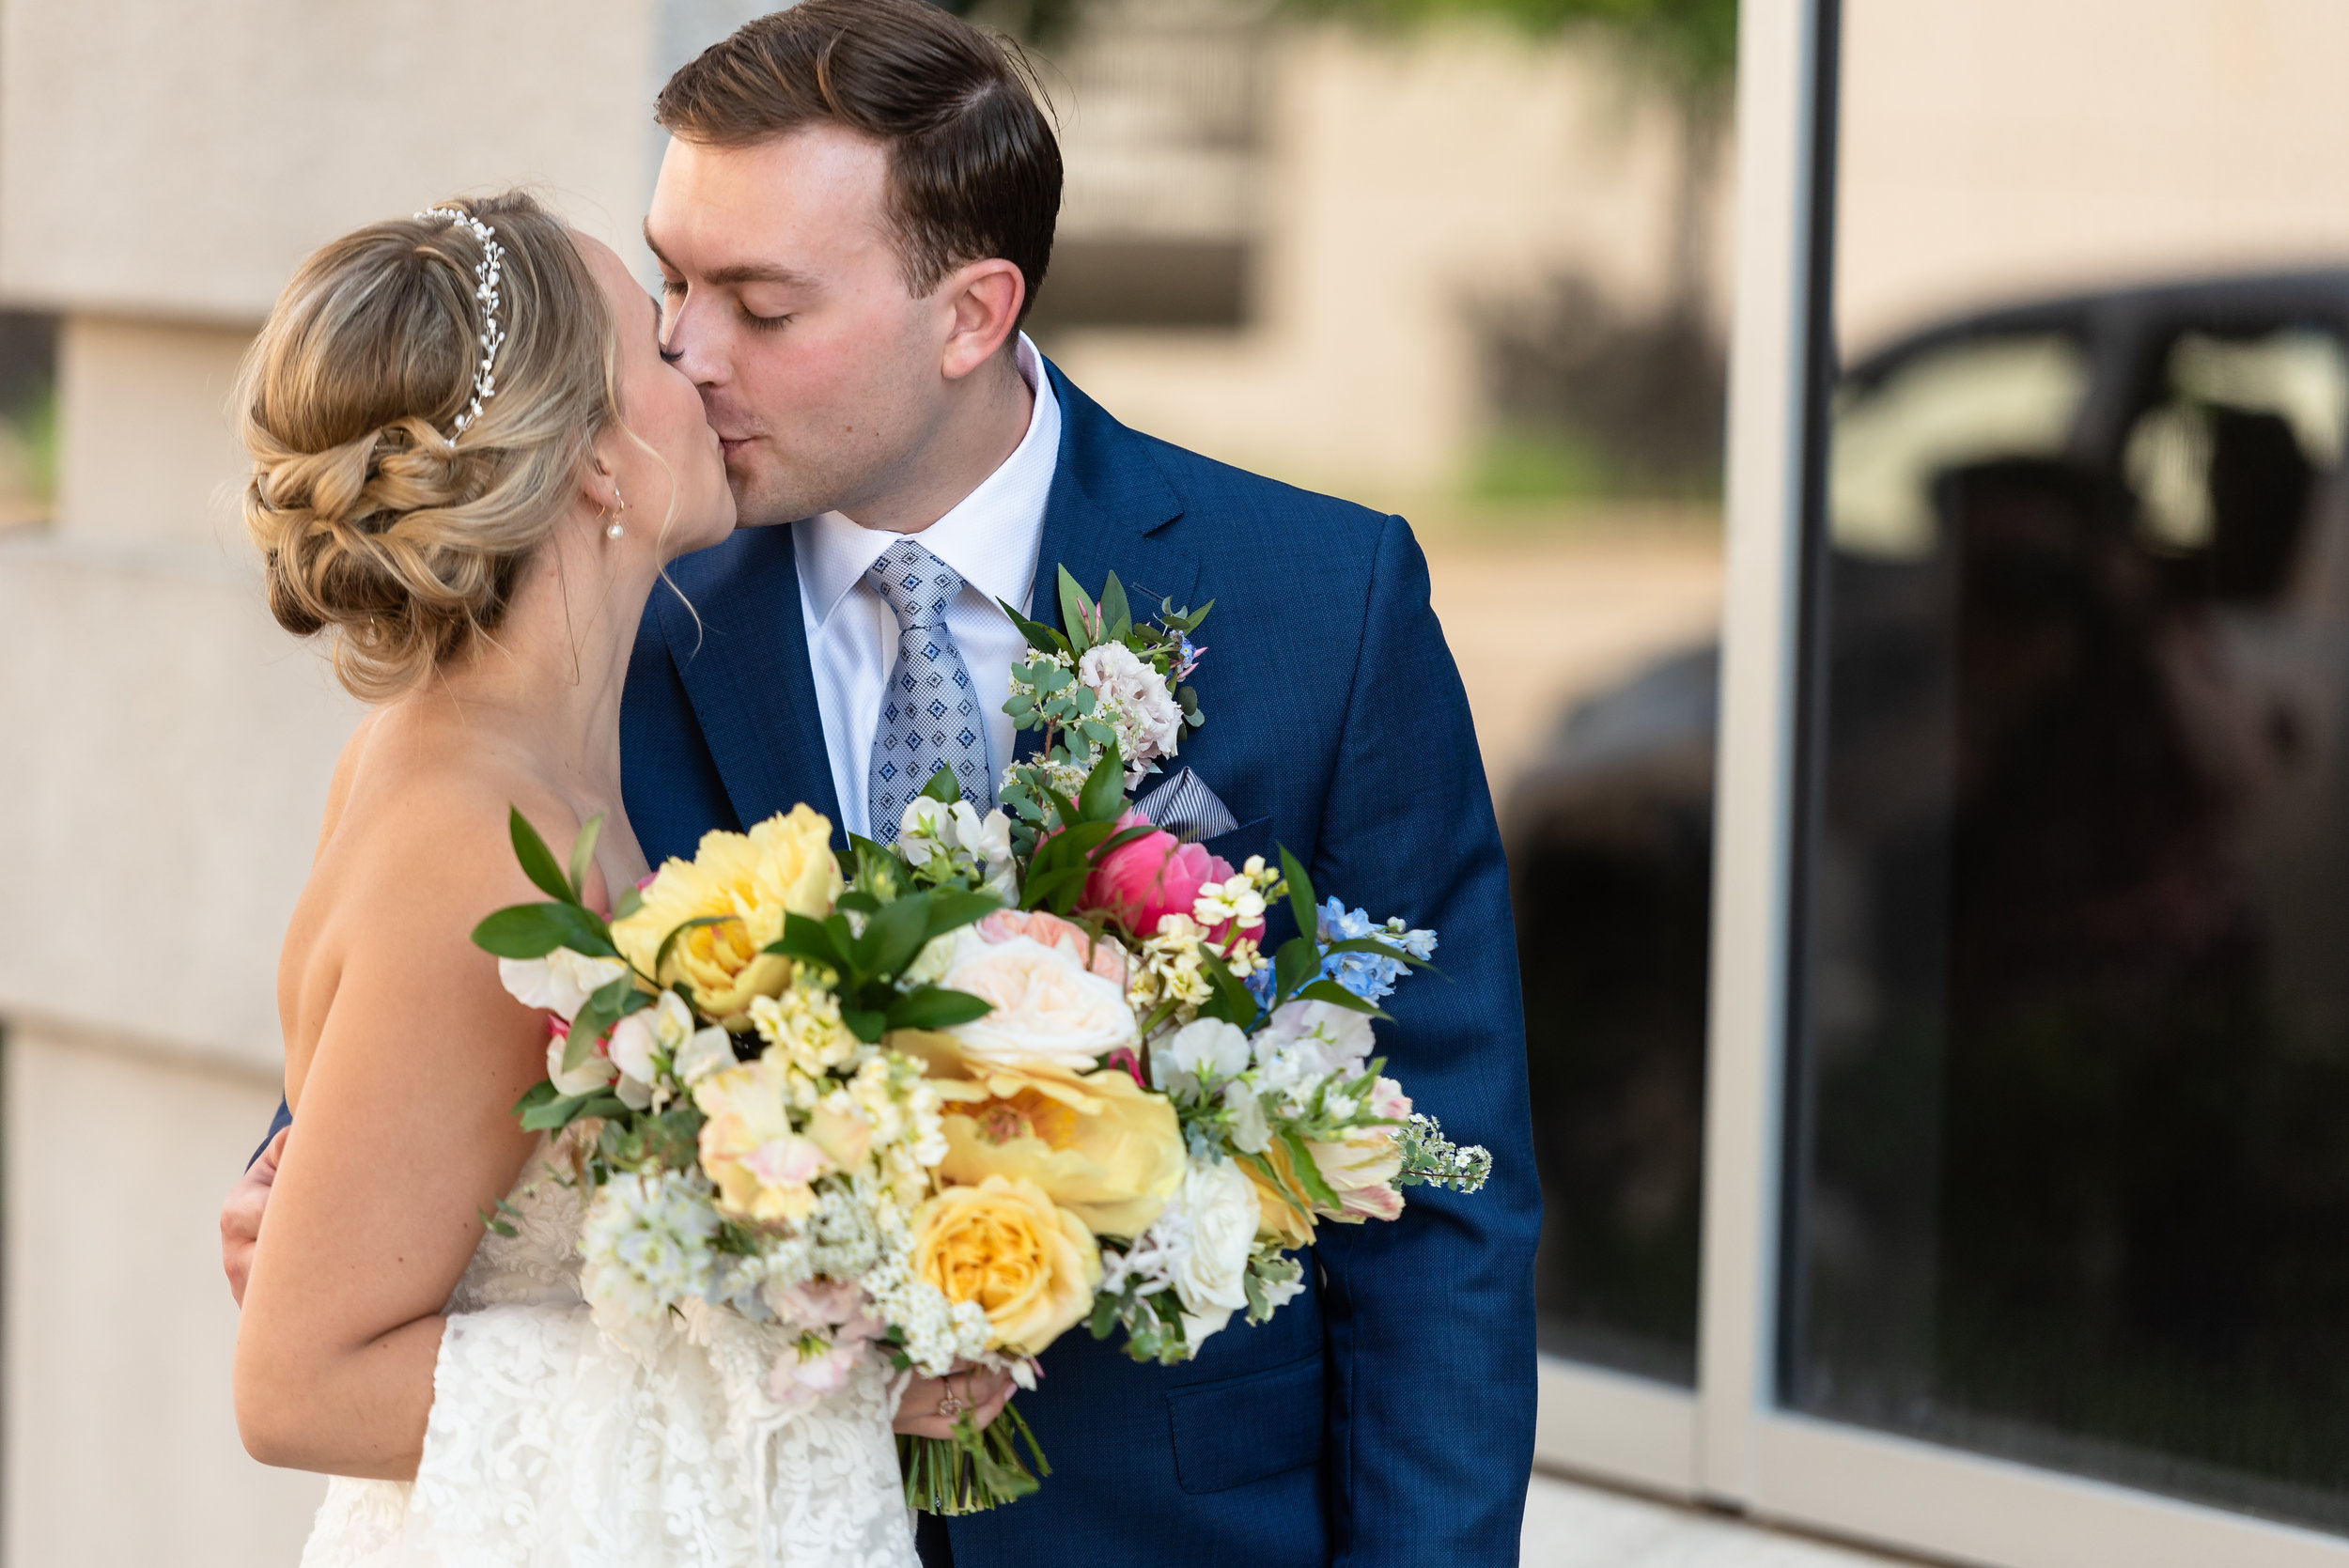 Kelsey + Jake - Real ALD wedding